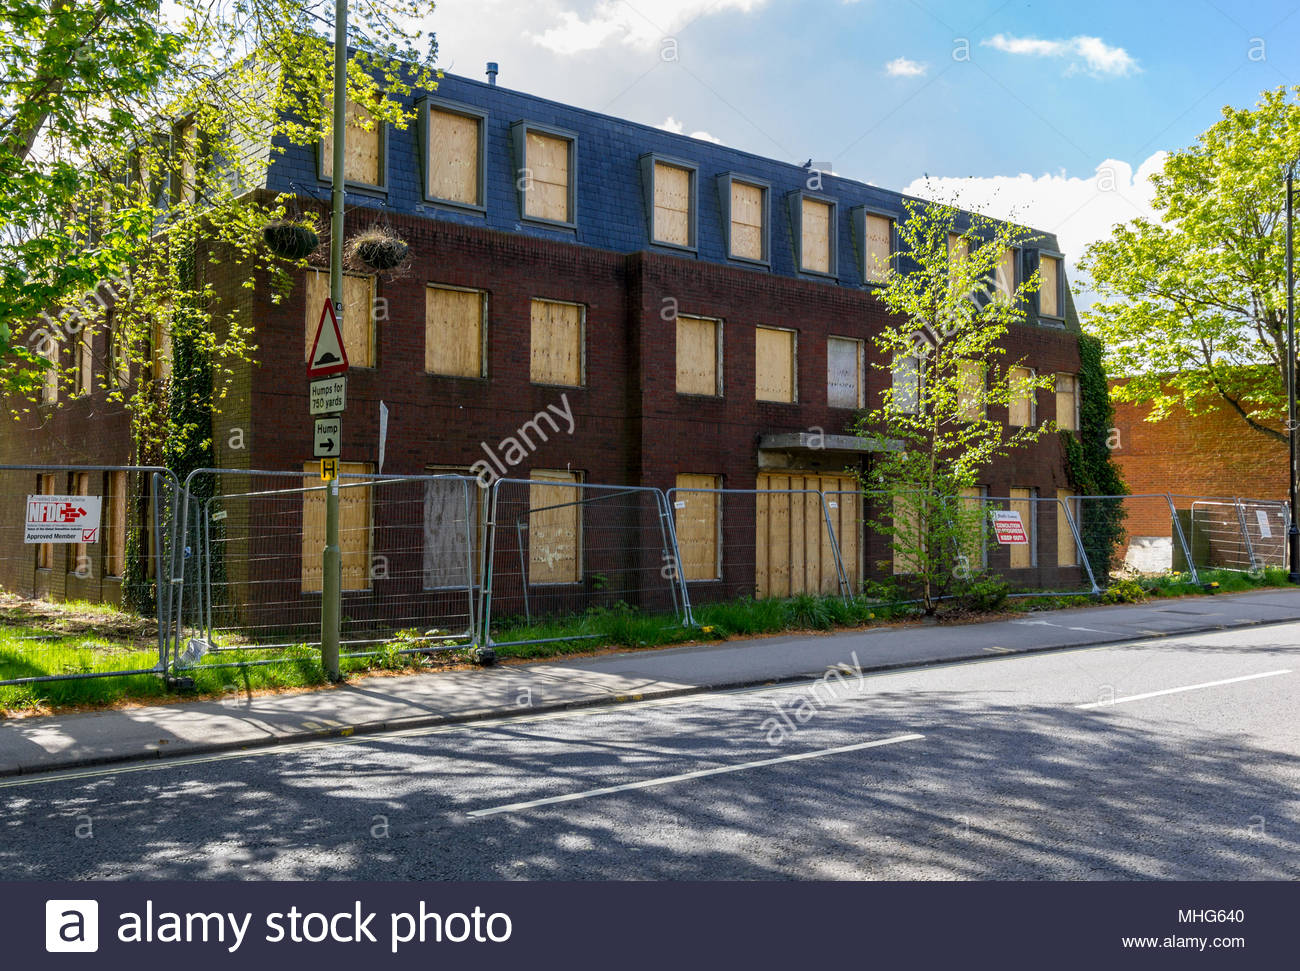 Urban regeneration, unused office block boarded up prior to change of use to residential accommodation. - Stock Image